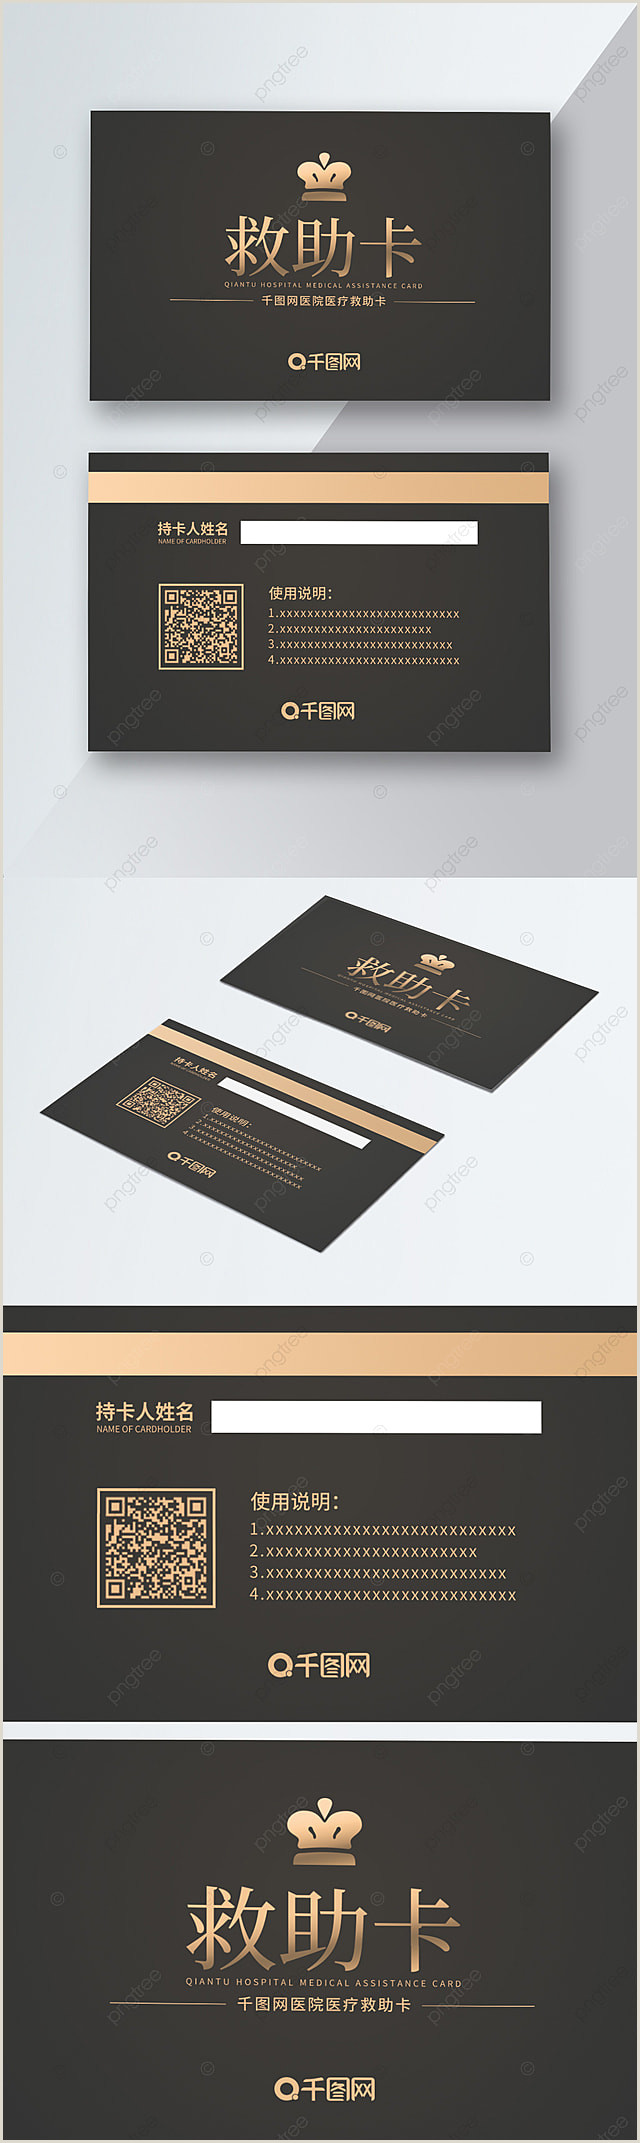 Complimentary Cards Designs Discount Card Templates Psd 186 Design Templates For Free